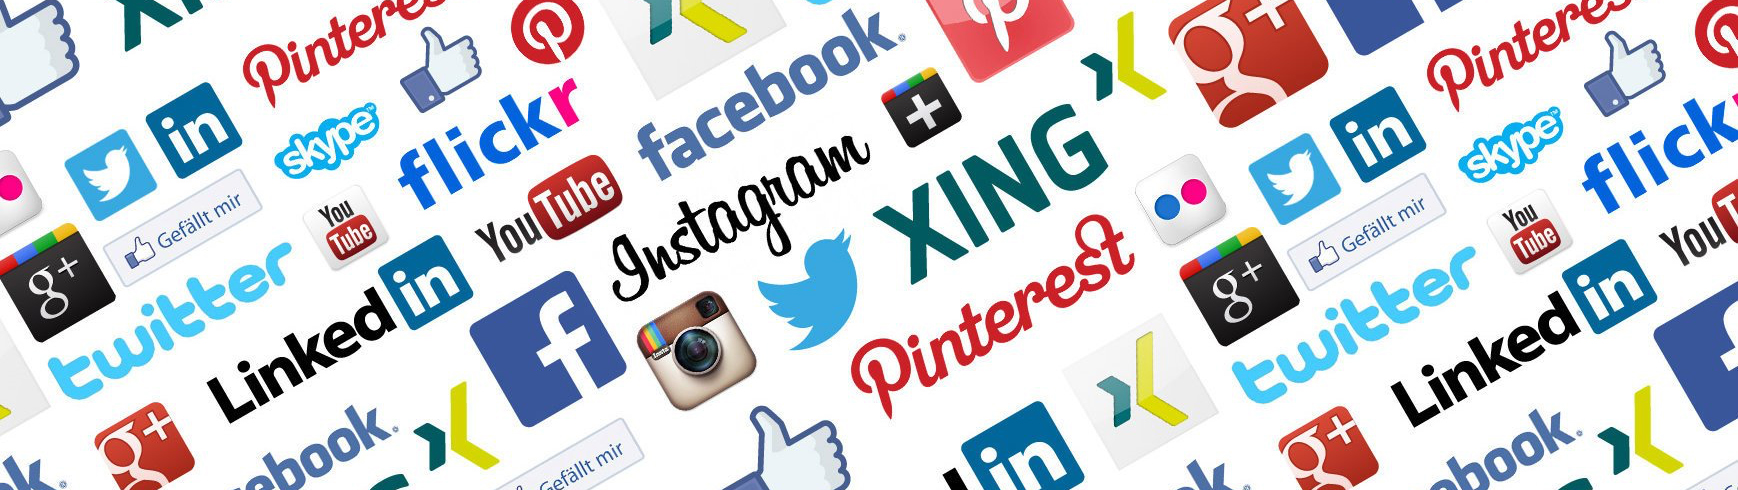 Getting the most from your social media